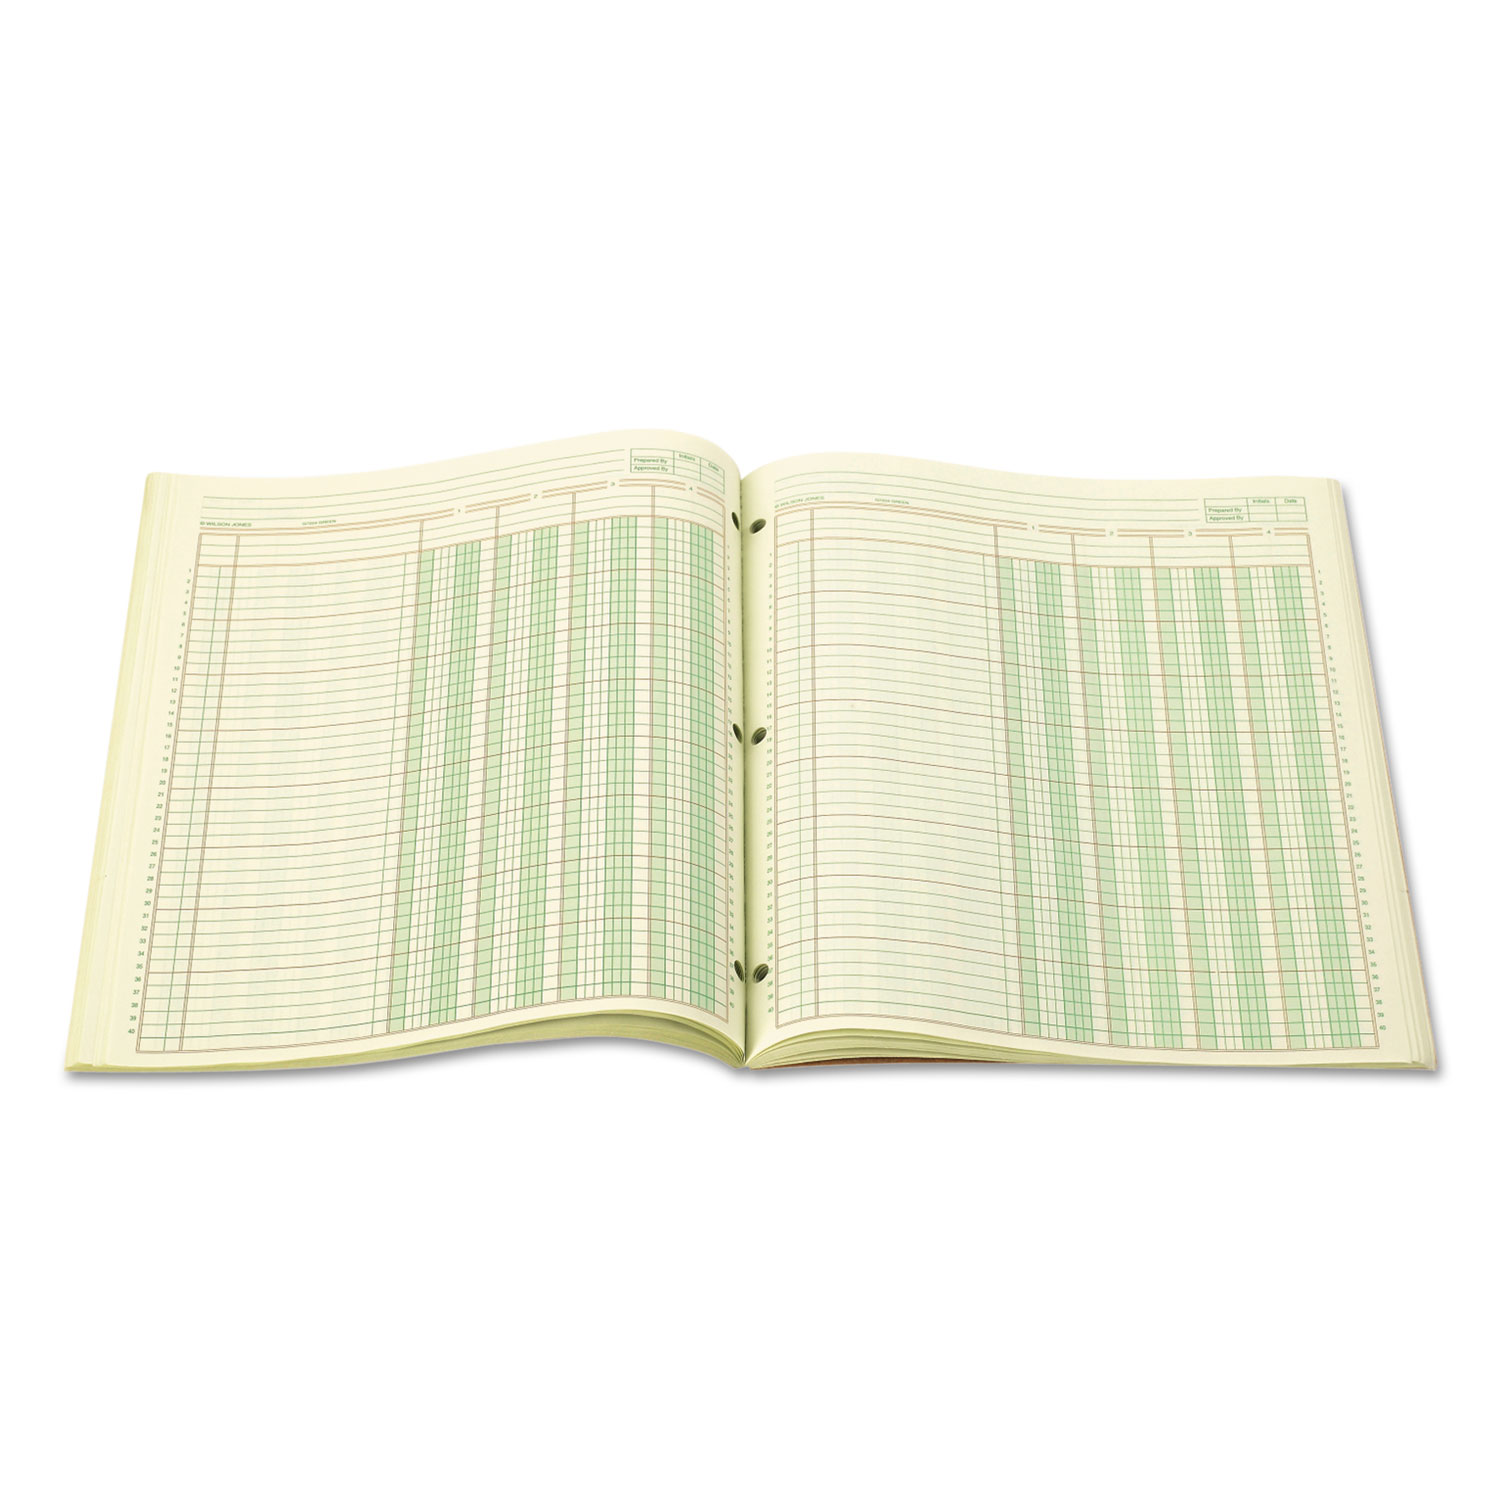 Accounting Pad Four Eight Unit Columns Two Sided Letter 50 Sheet Pad